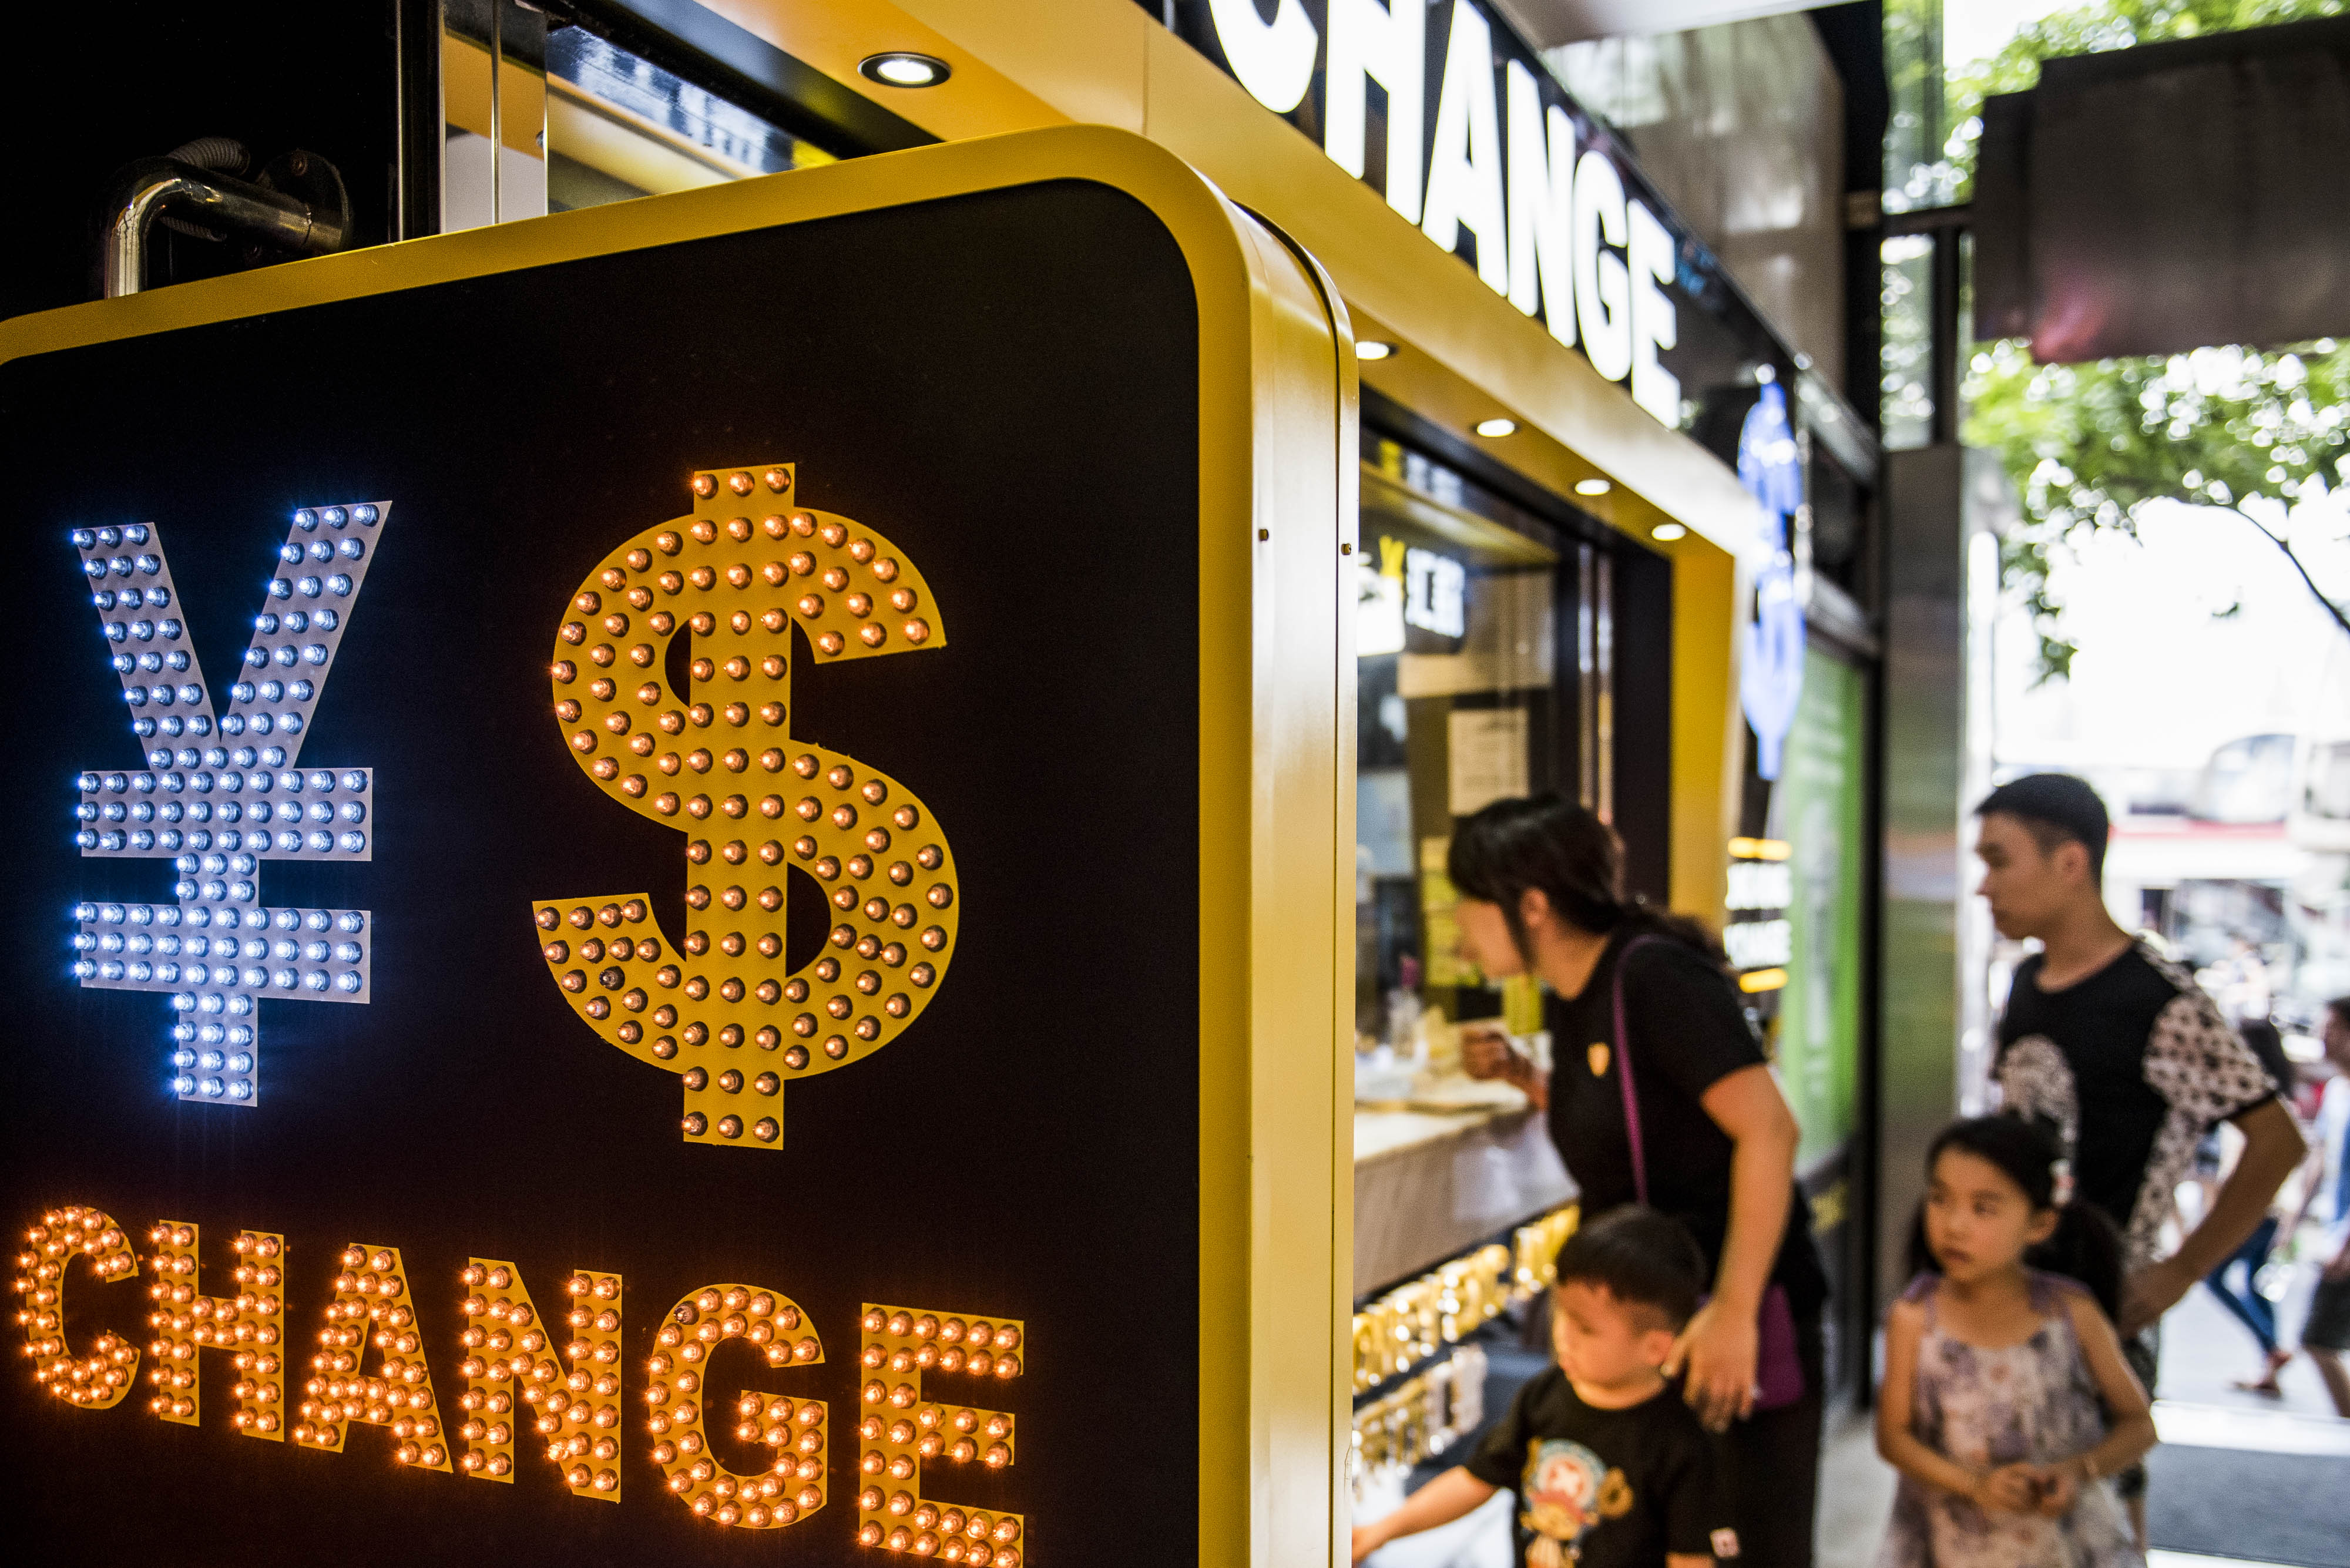 The currency symbol for the Chinese yuan and the dollar is displayed at a currency exchange store in Hong Kong, China, on Wednesday, Aug. 12, 2015. The yuan sank for a second day, spurring China's central bank to intervene as the biggest rout since 1994 tested the government's resolve to give market forces more sway in determining the exchange rate. Photographer: Xaume Olleros/Bloomberg